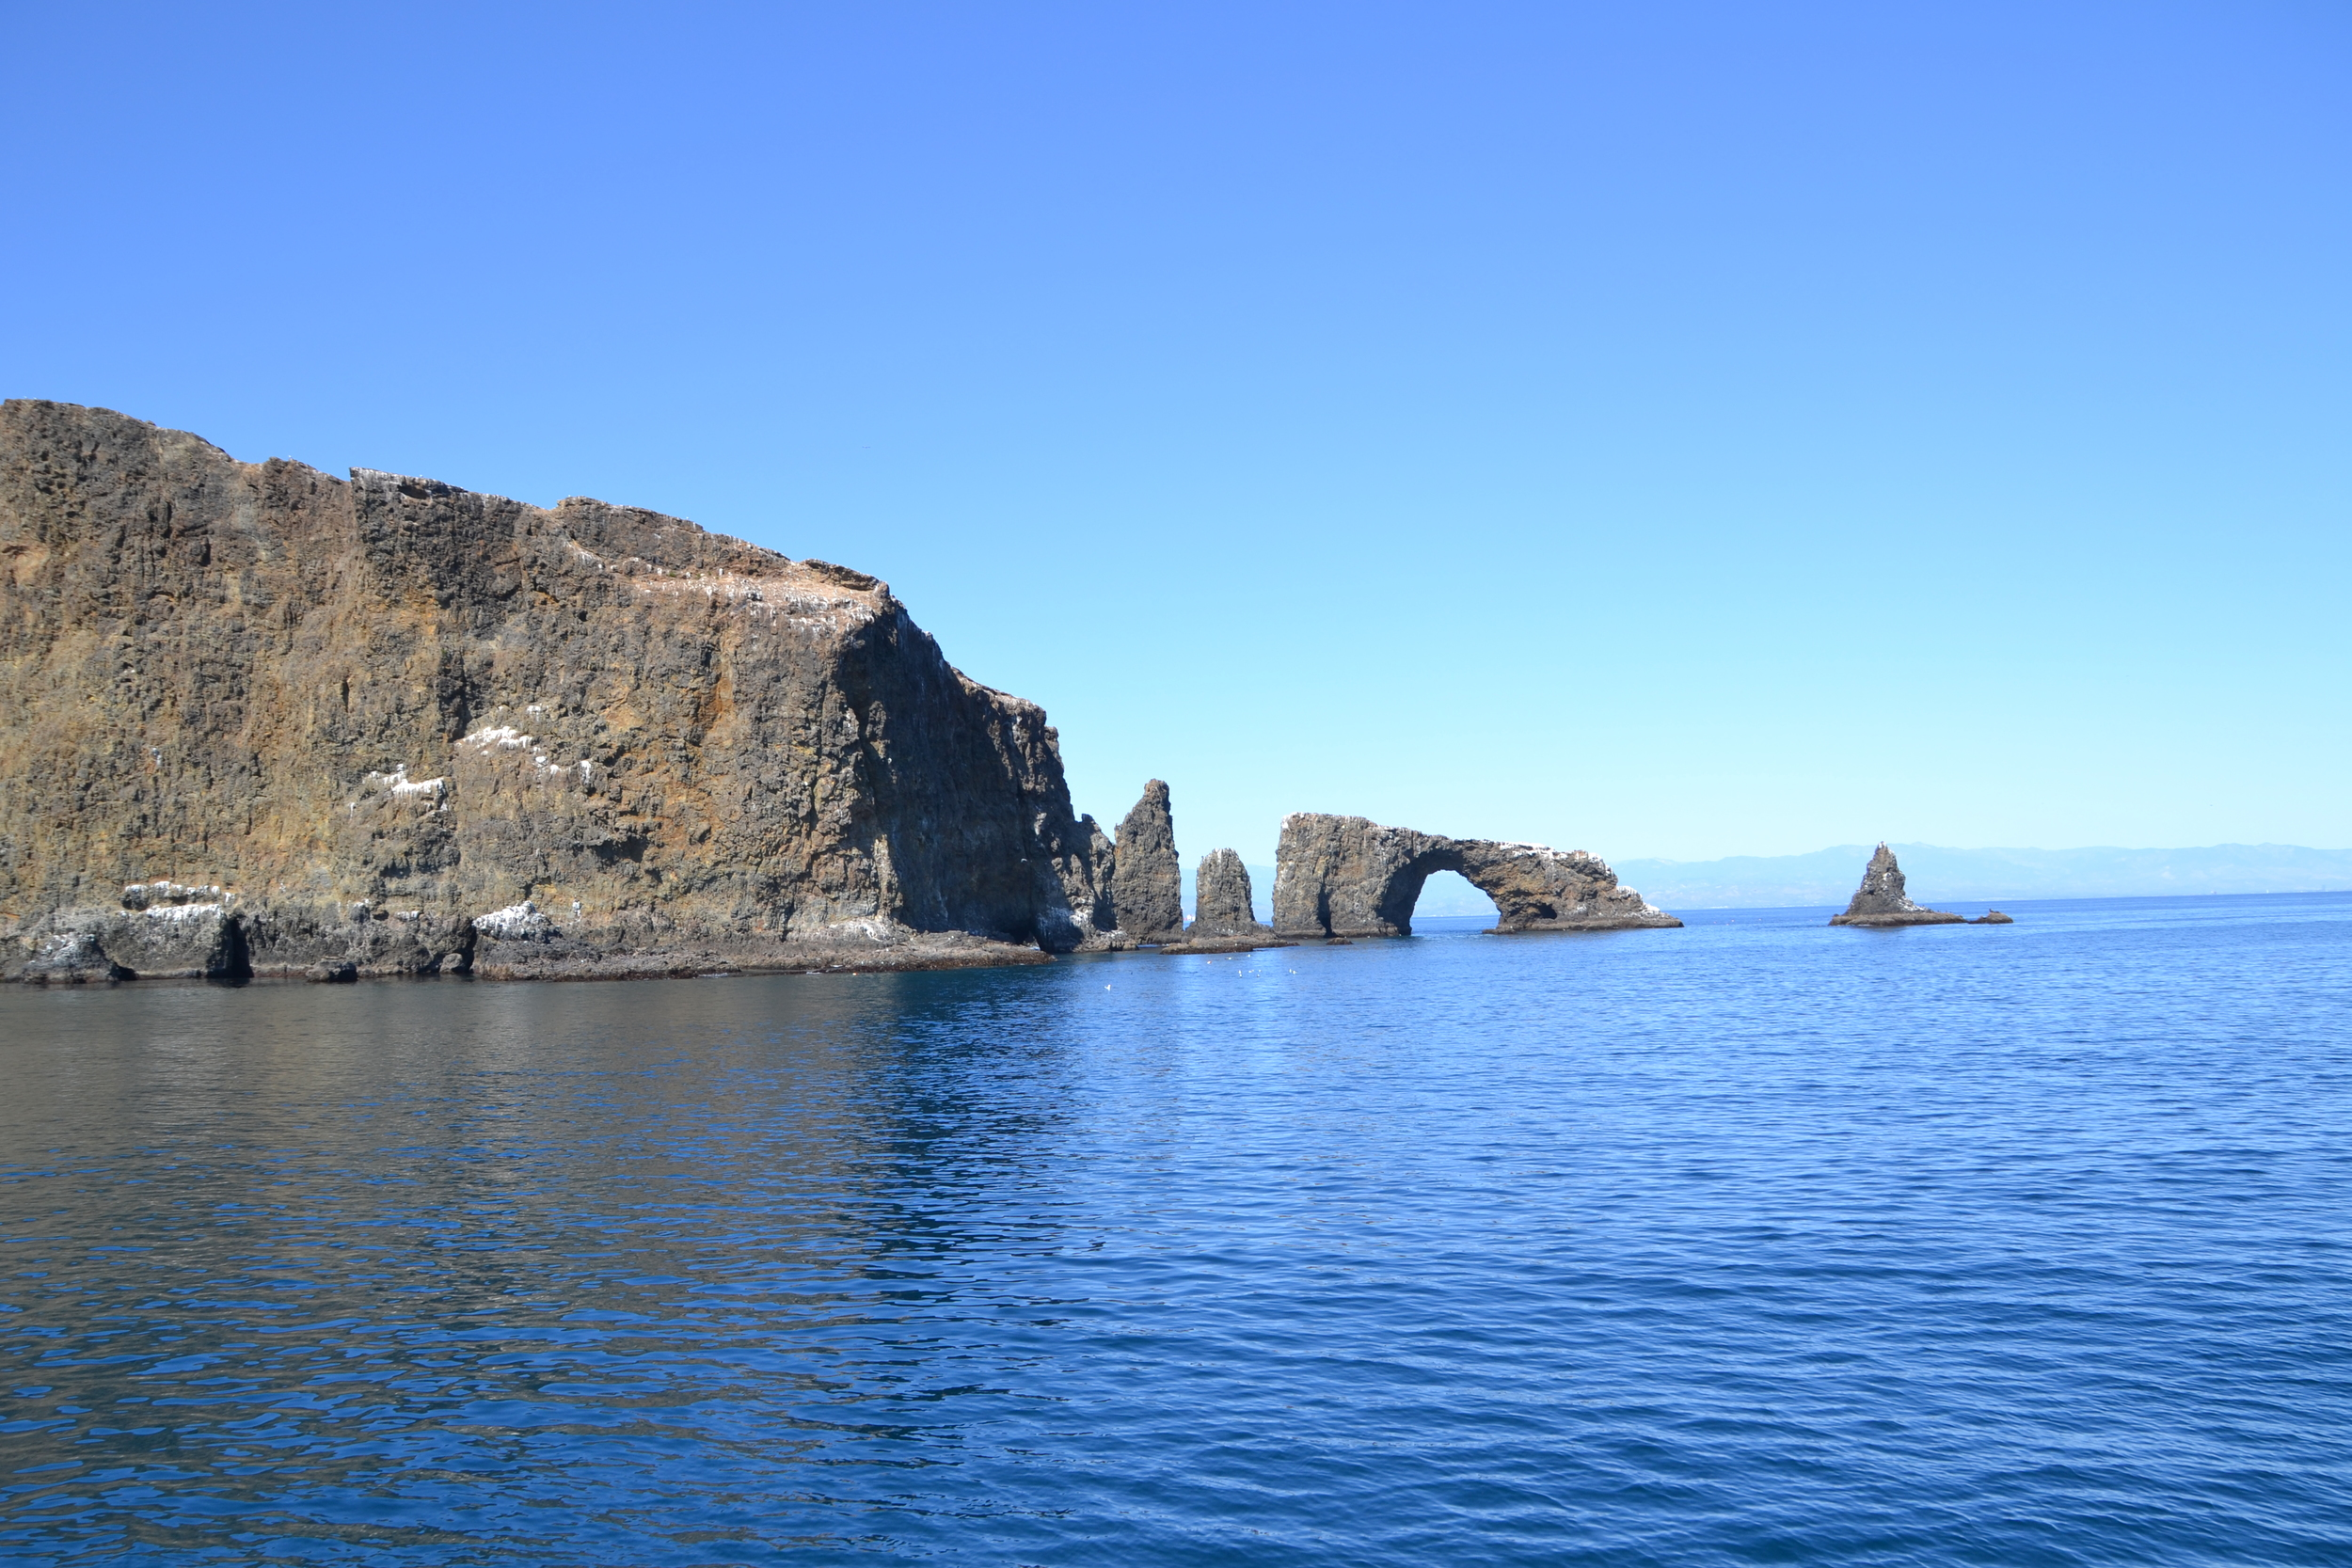 The Arch Rock at Anacapa Island, Channel Islands National Park